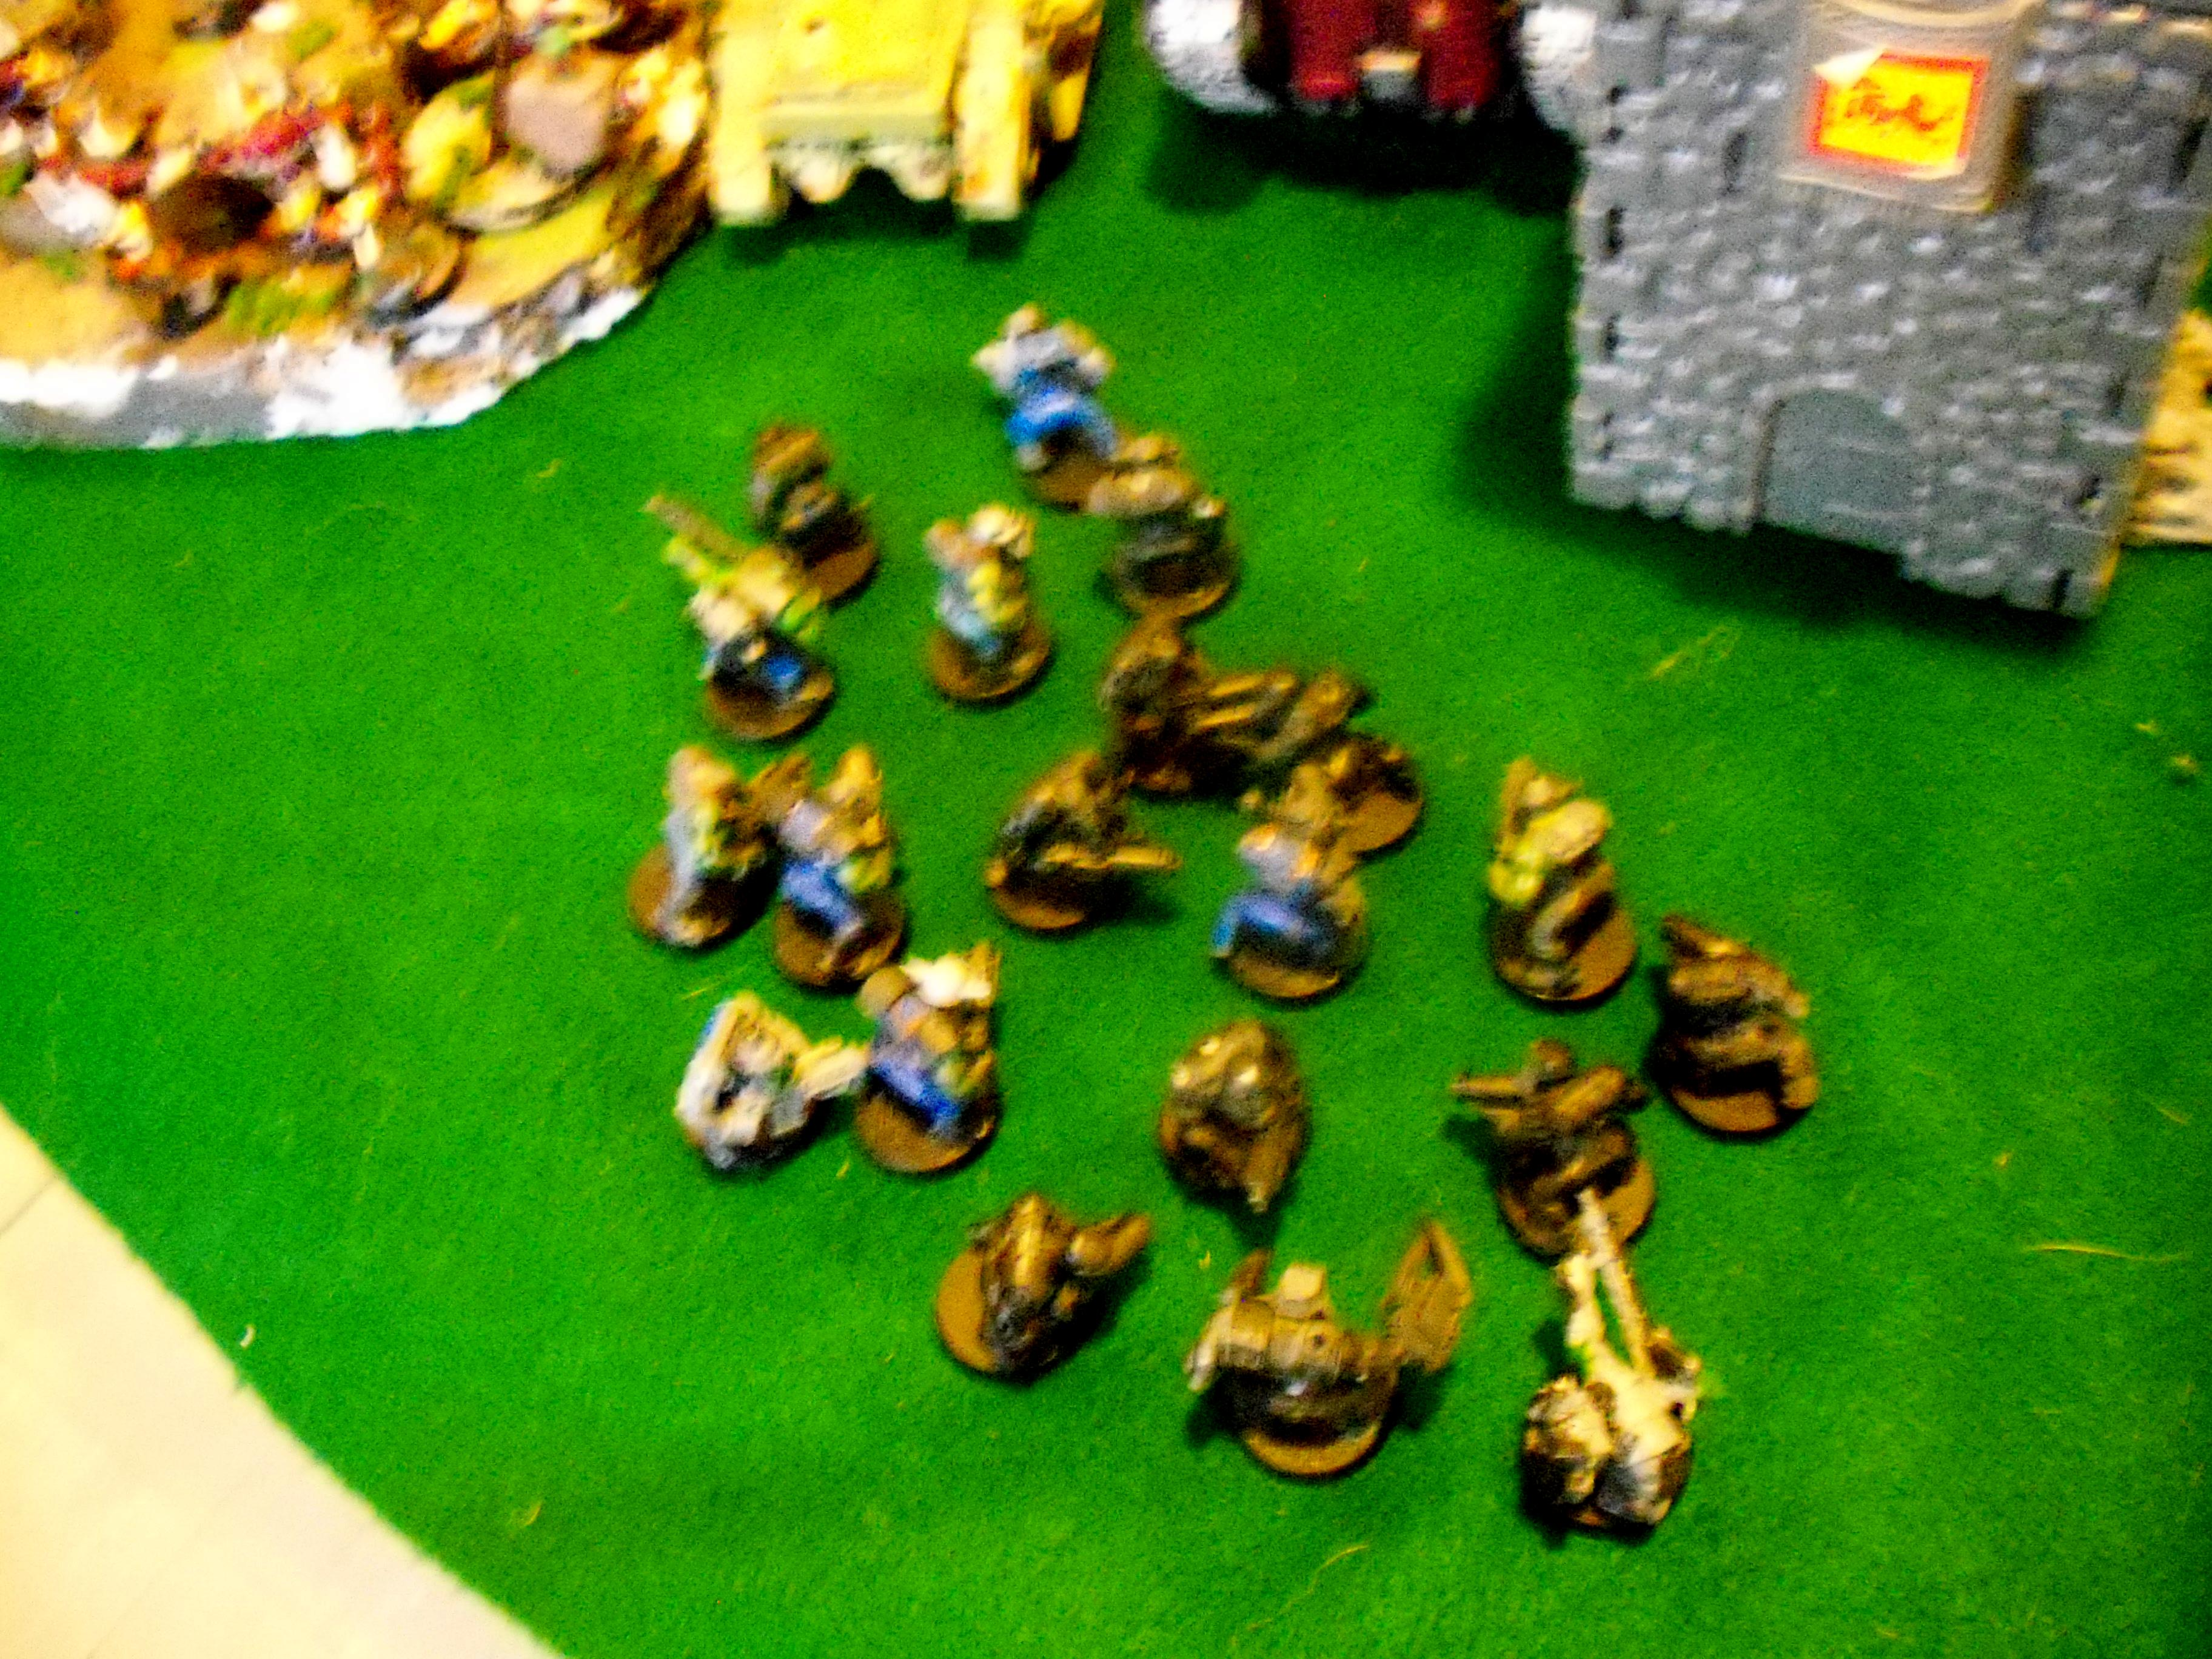 Battle Report, Game Table, Top